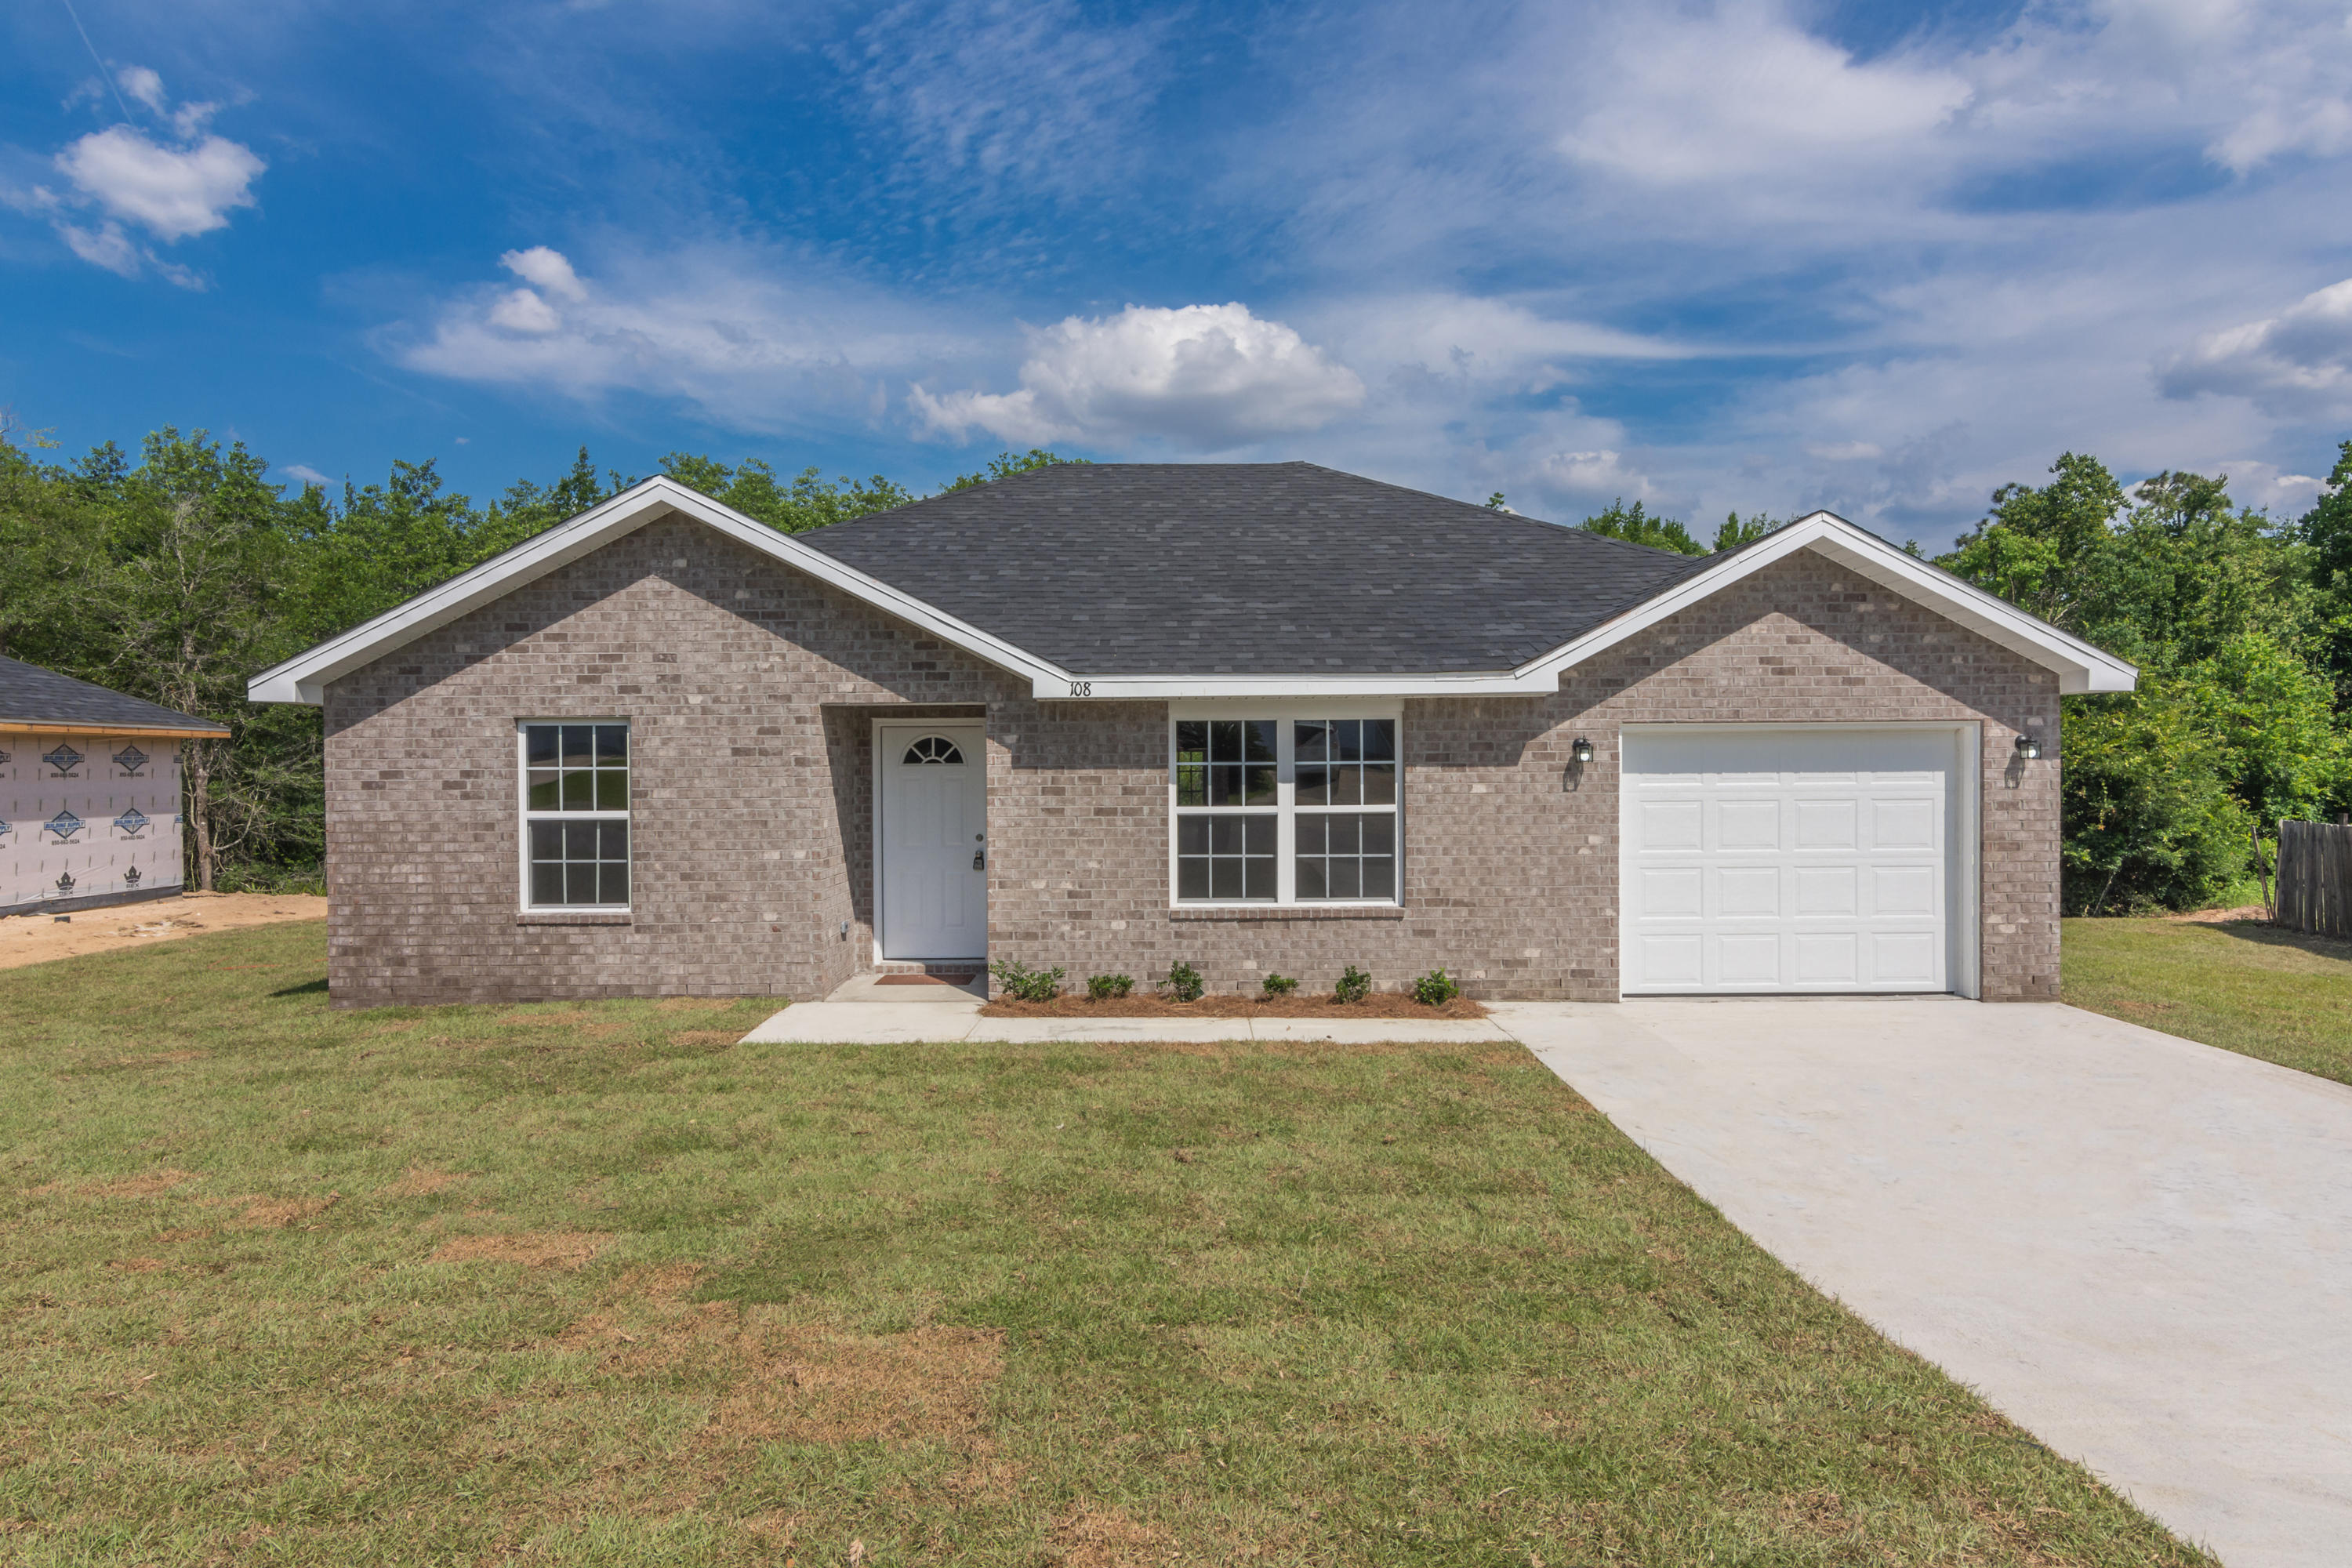 Photo of home for sale at 402 Serene, Crestview FL